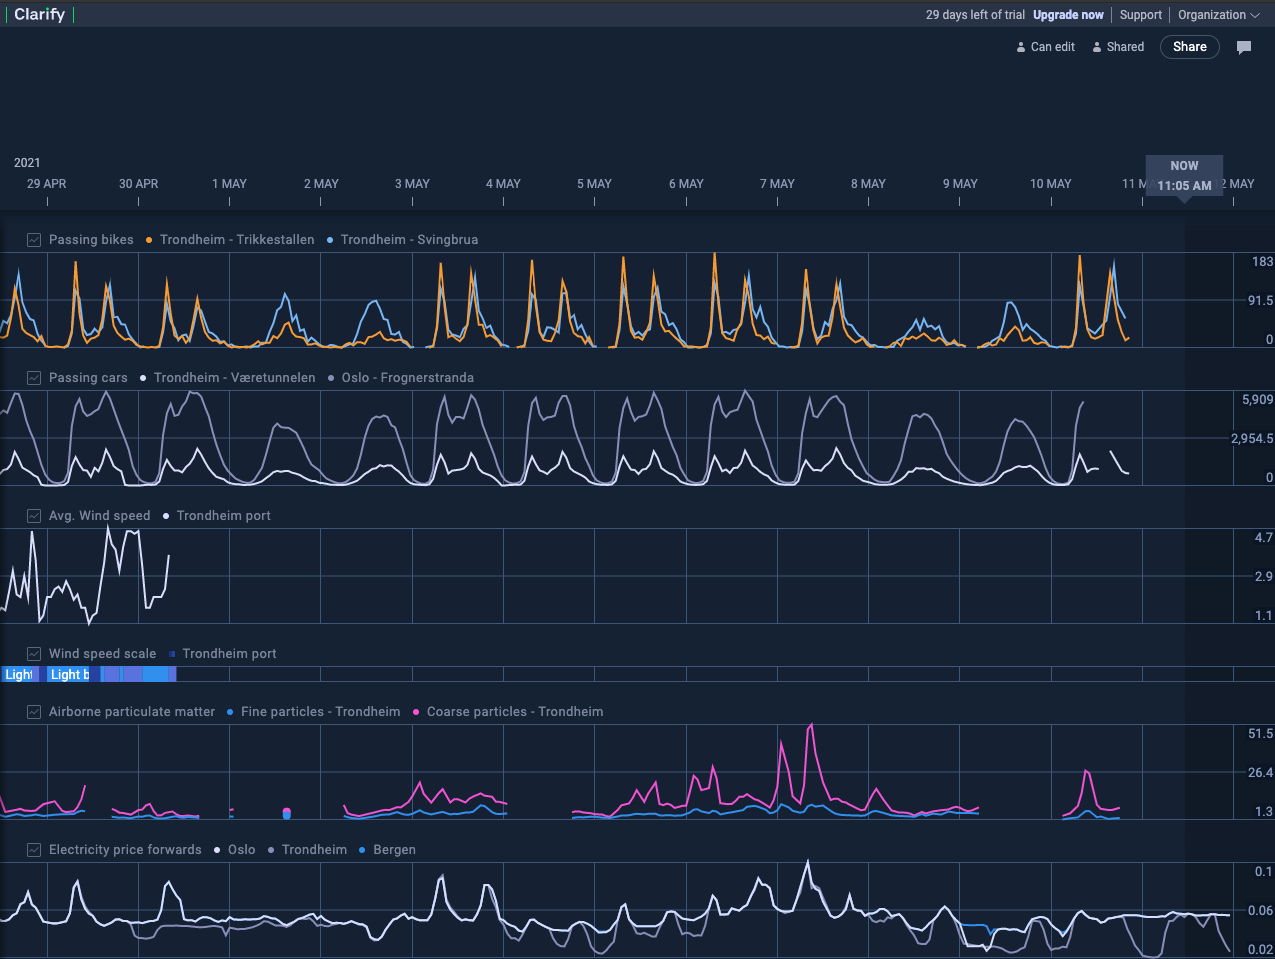 A timeline in Clarify with Items and timeseries data.